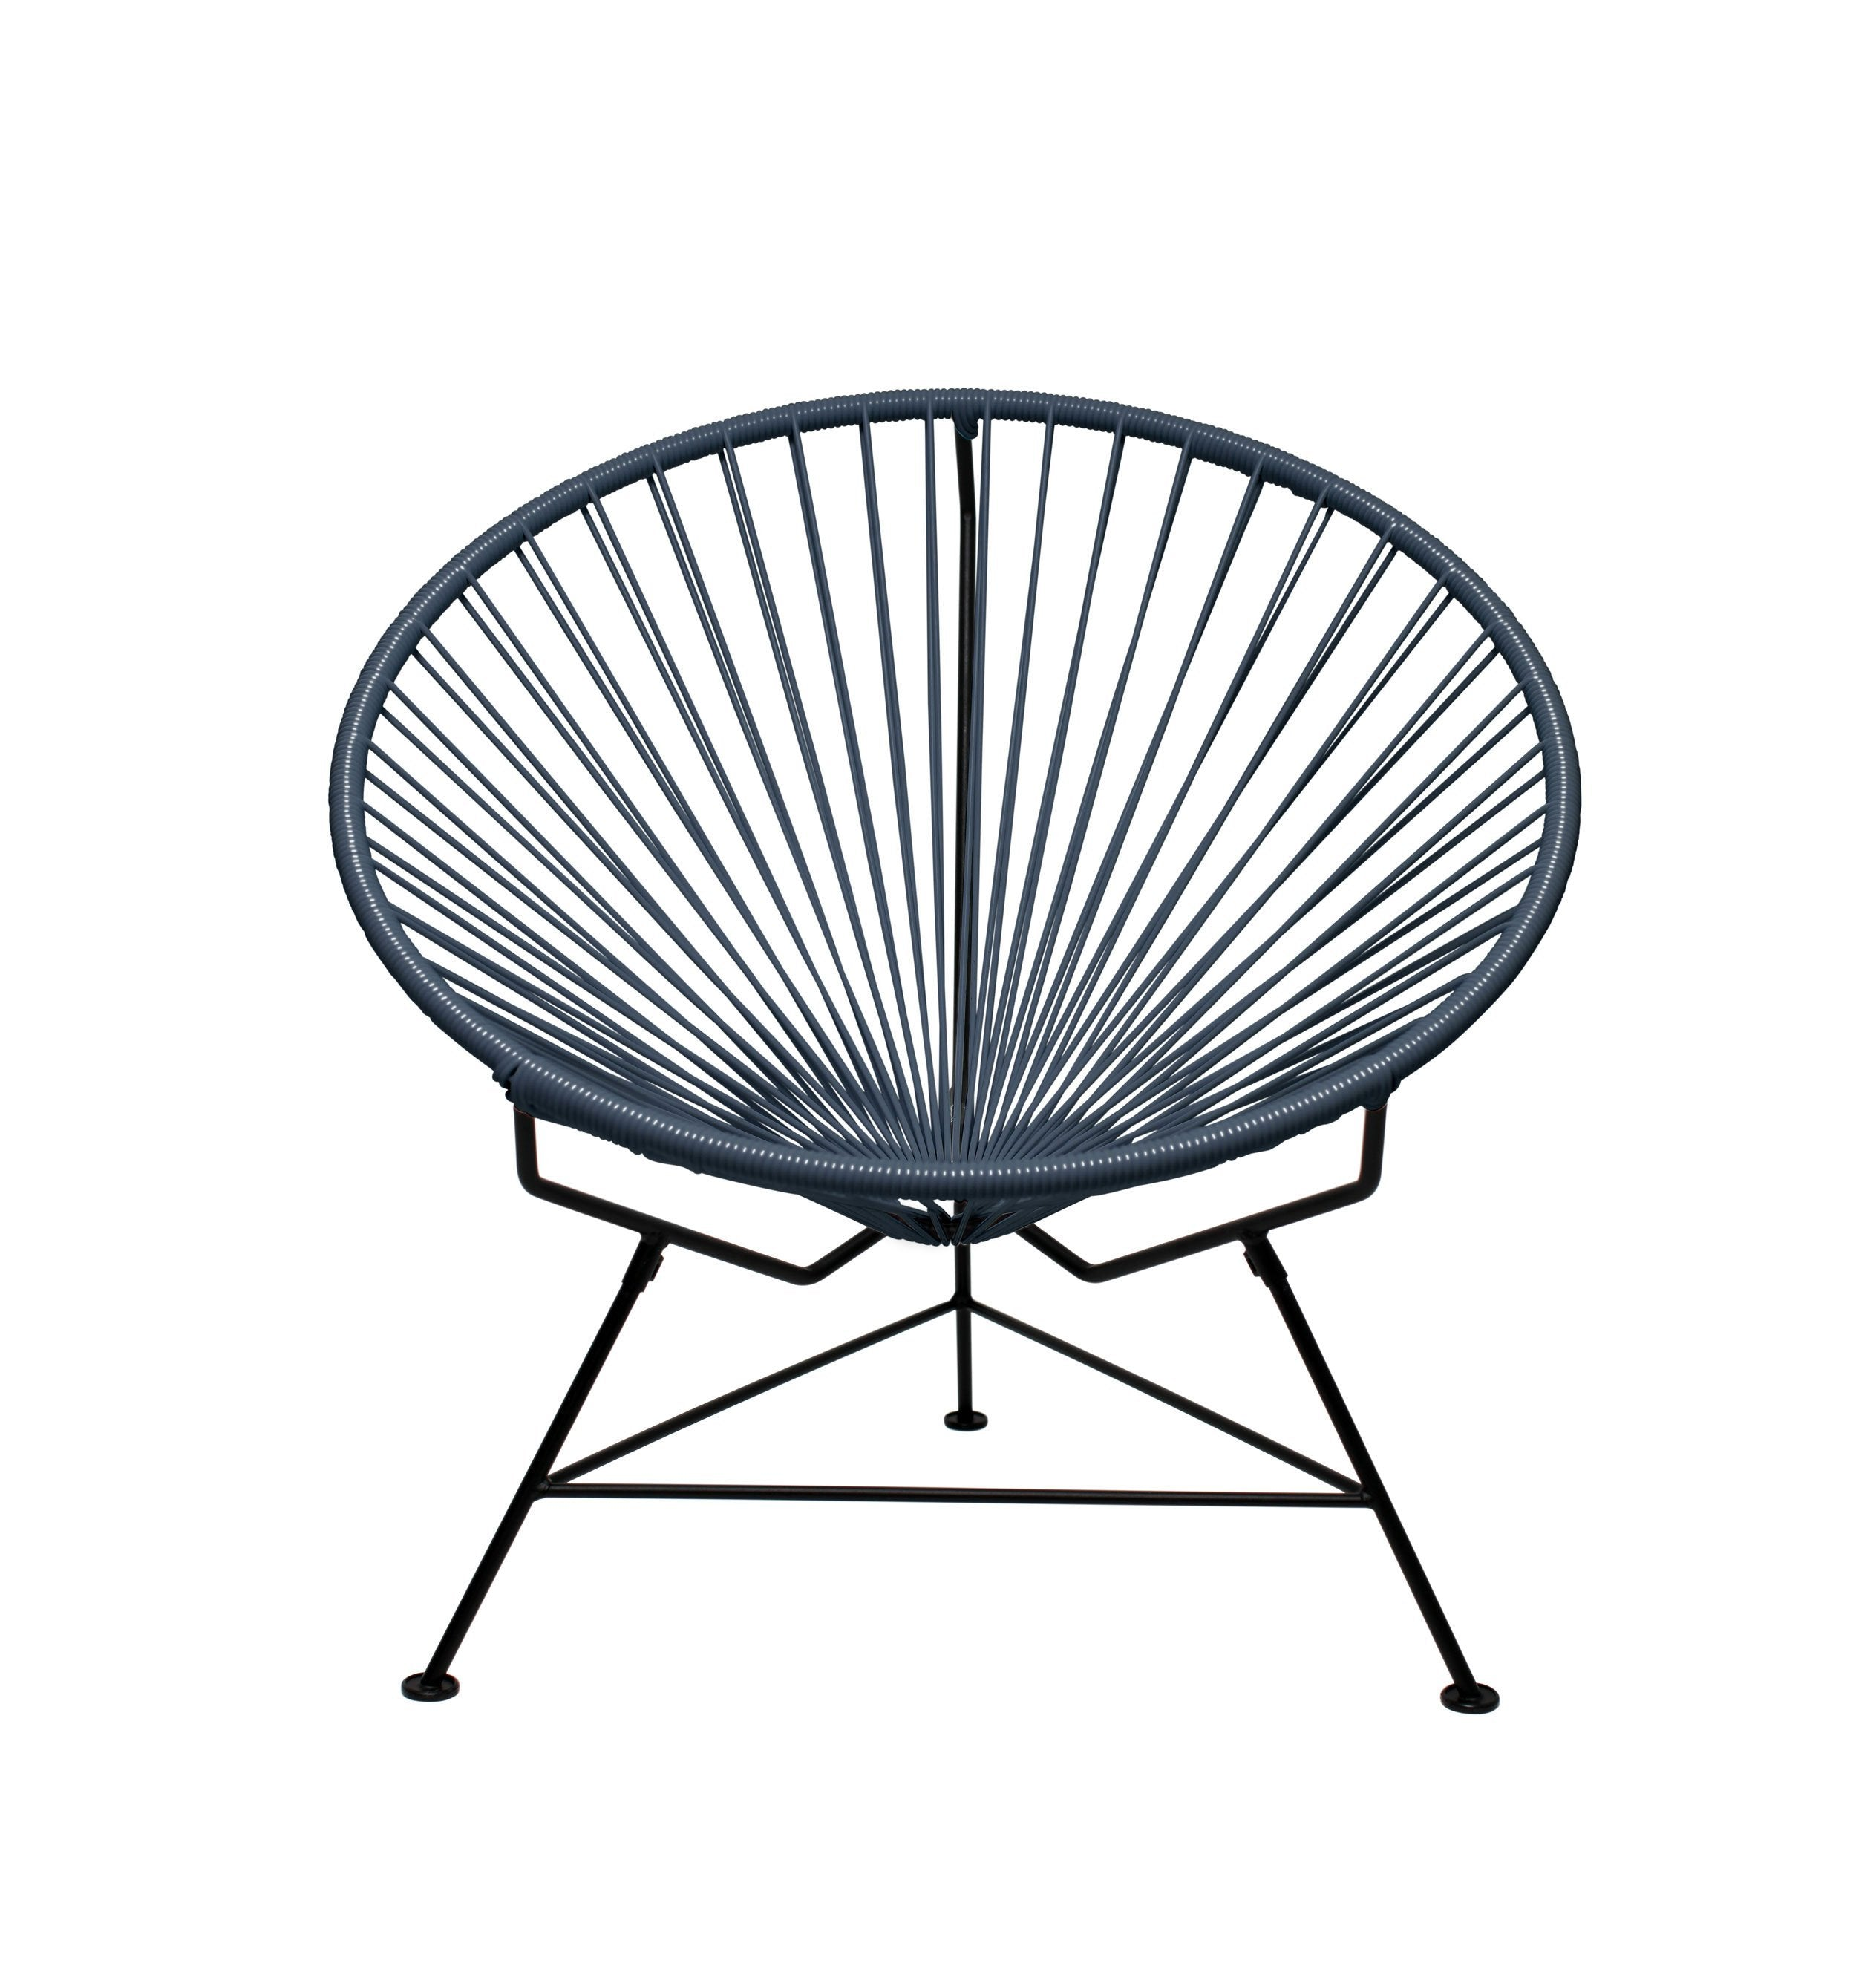 Buy Innit Chair on Black Frame at Lifeix Design for only $430 00